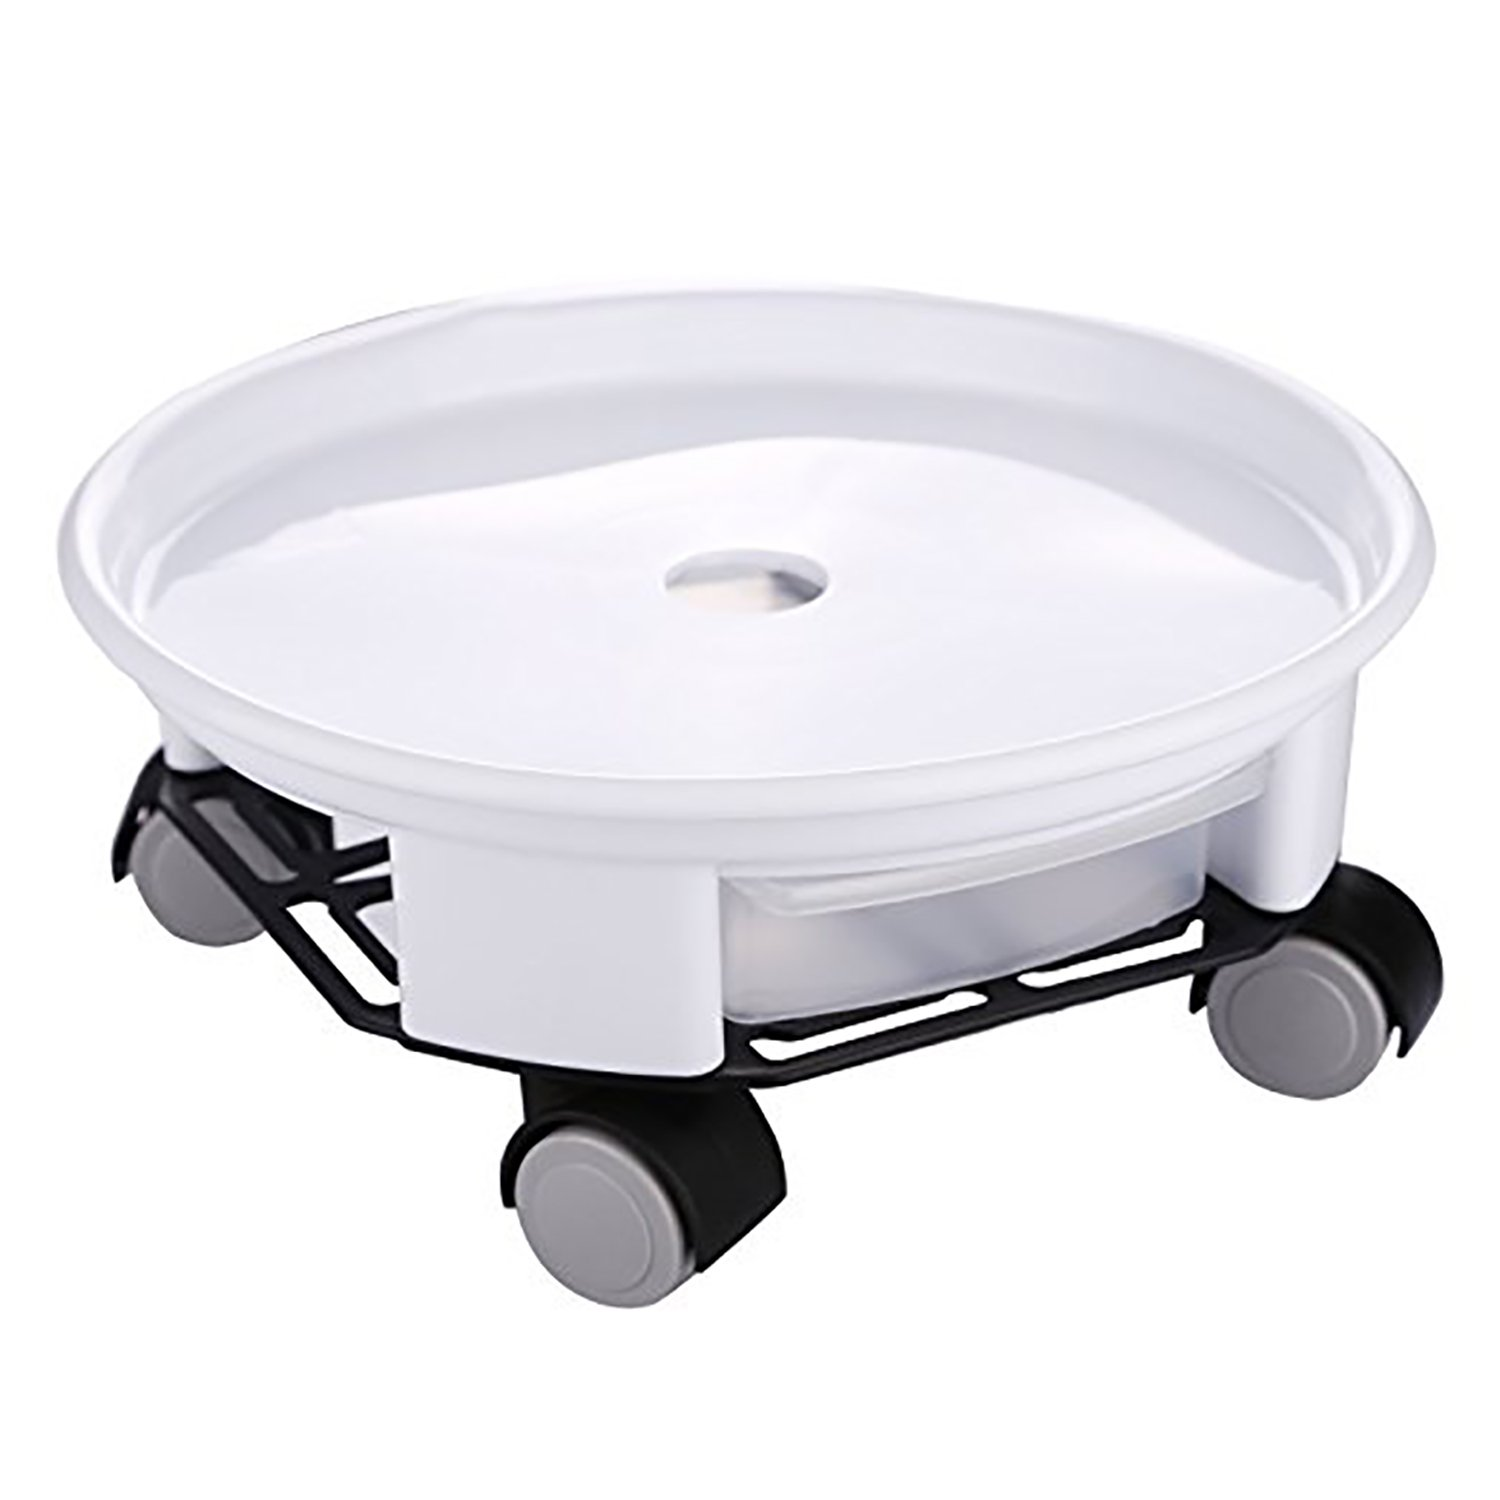 rescozy 14'' Heavy Duty Round Plant Caddy with Wheels and Water Container, White